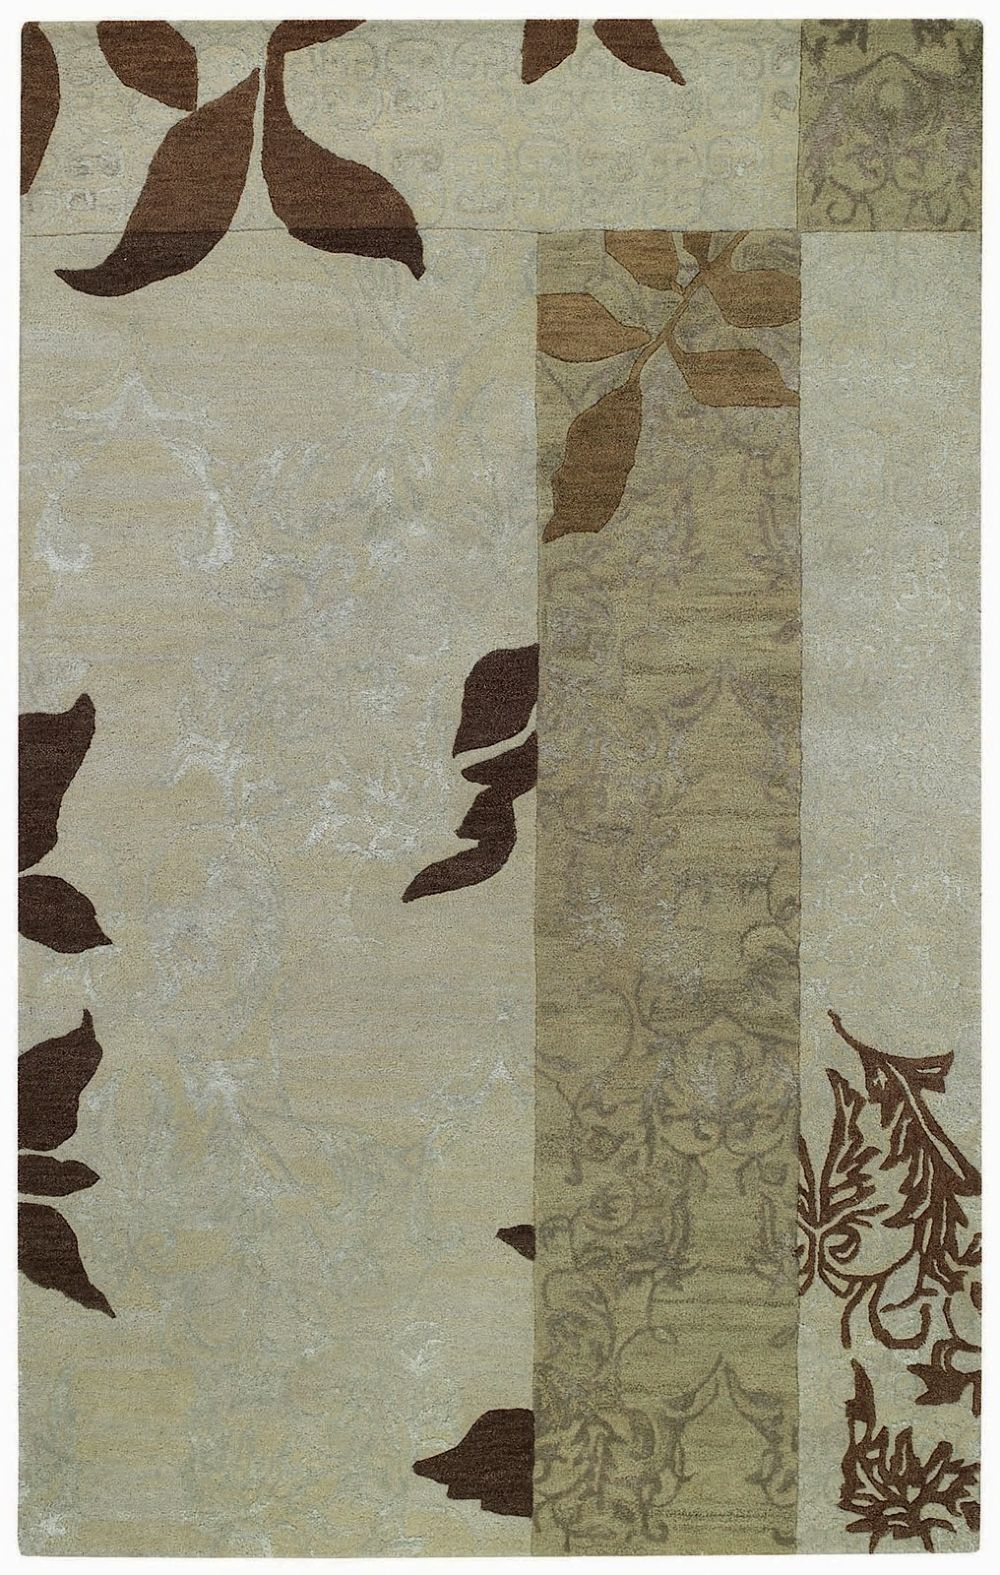 capel brock haven-pavilion contemporary area rug collection